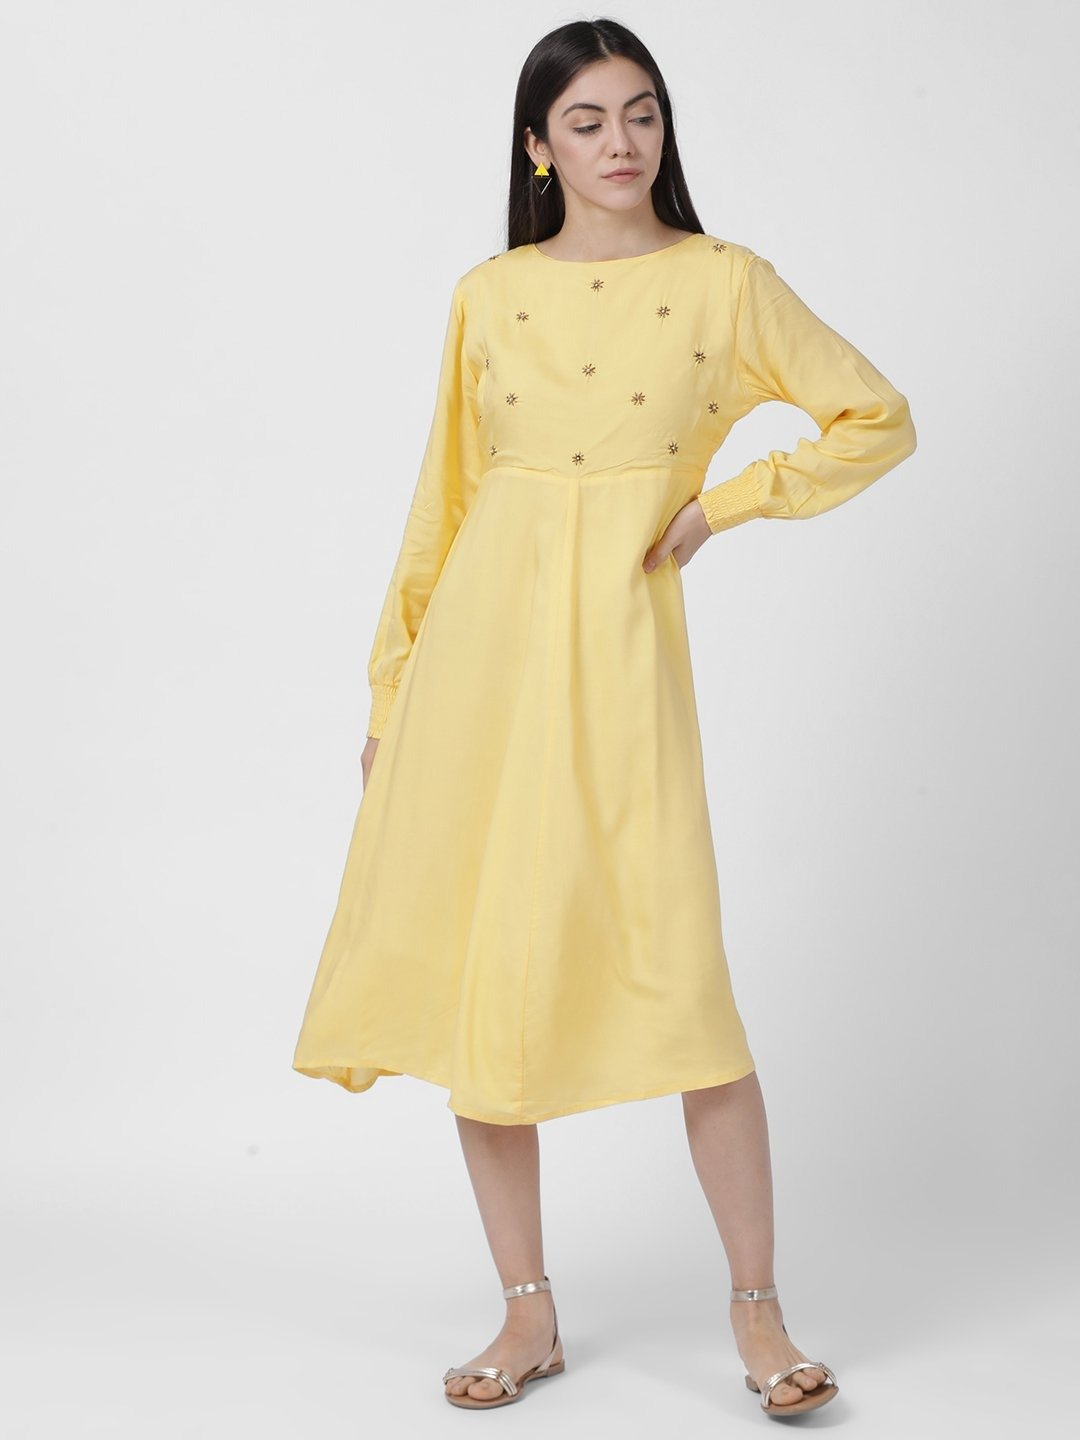 YELLOW SMOCKED SLEEVE DRESS - Rossbelle